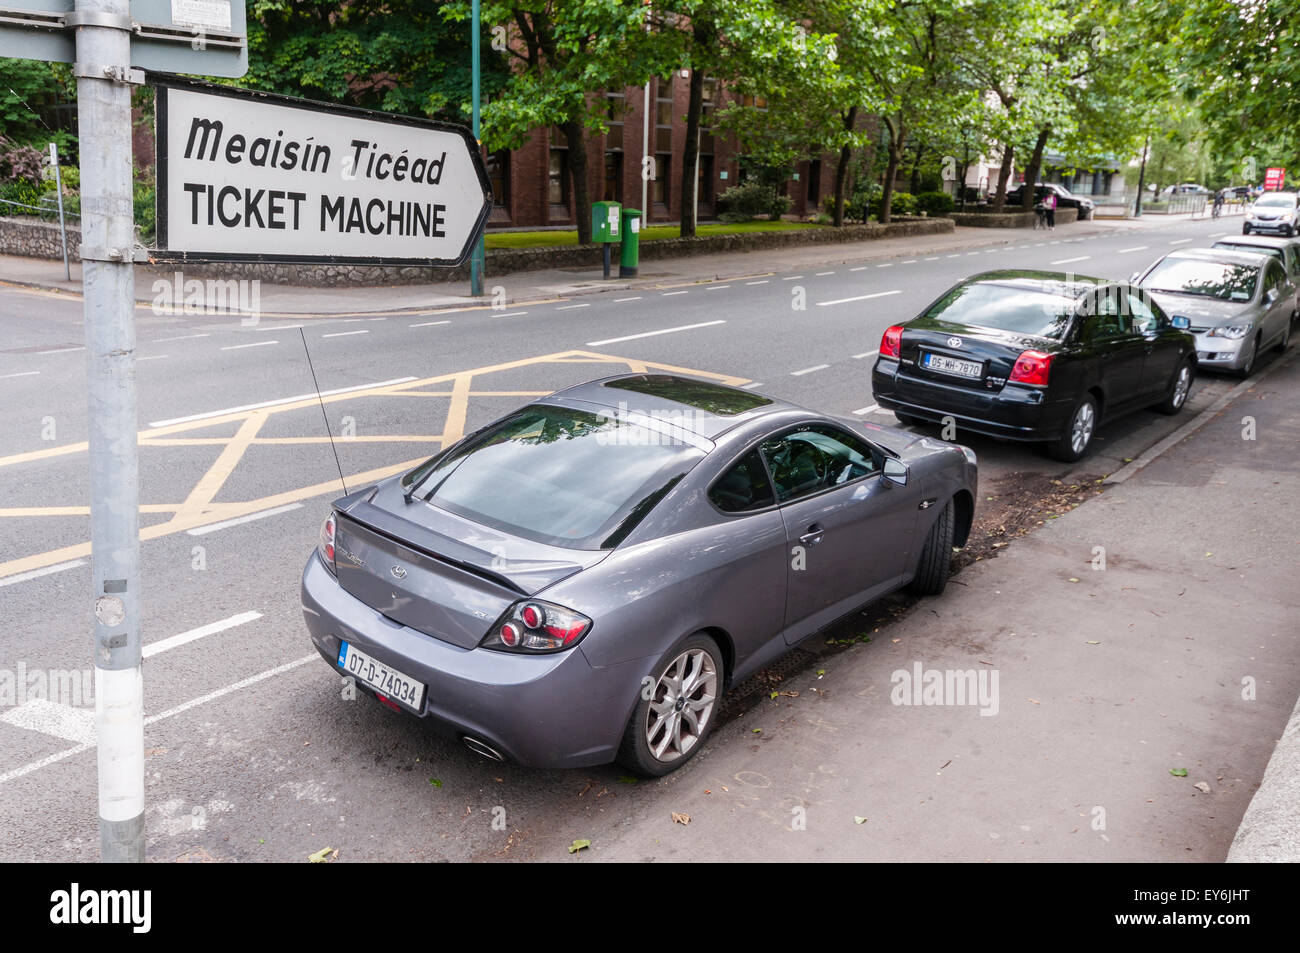 Sign for a car parking ticket machine in Dublin, Ireland - Stock Image